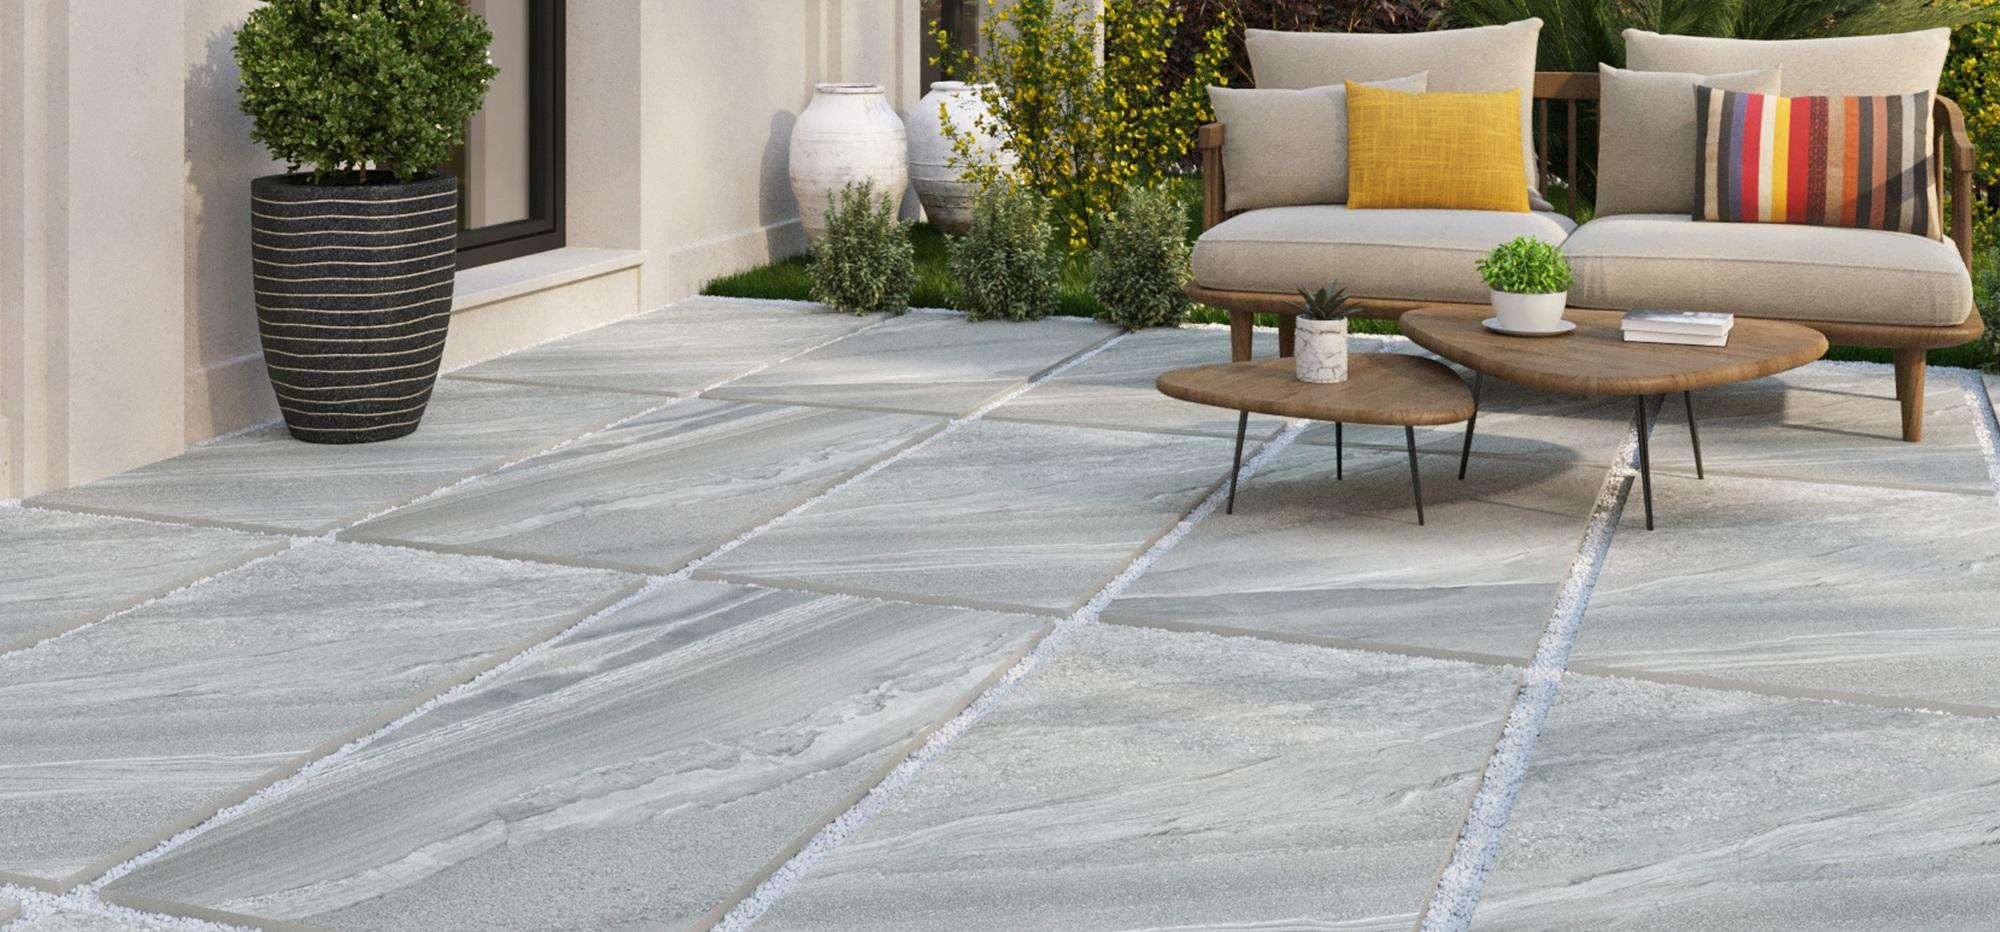 20mm PORCELAIN PAVING TILES (R11- Non Slippery)